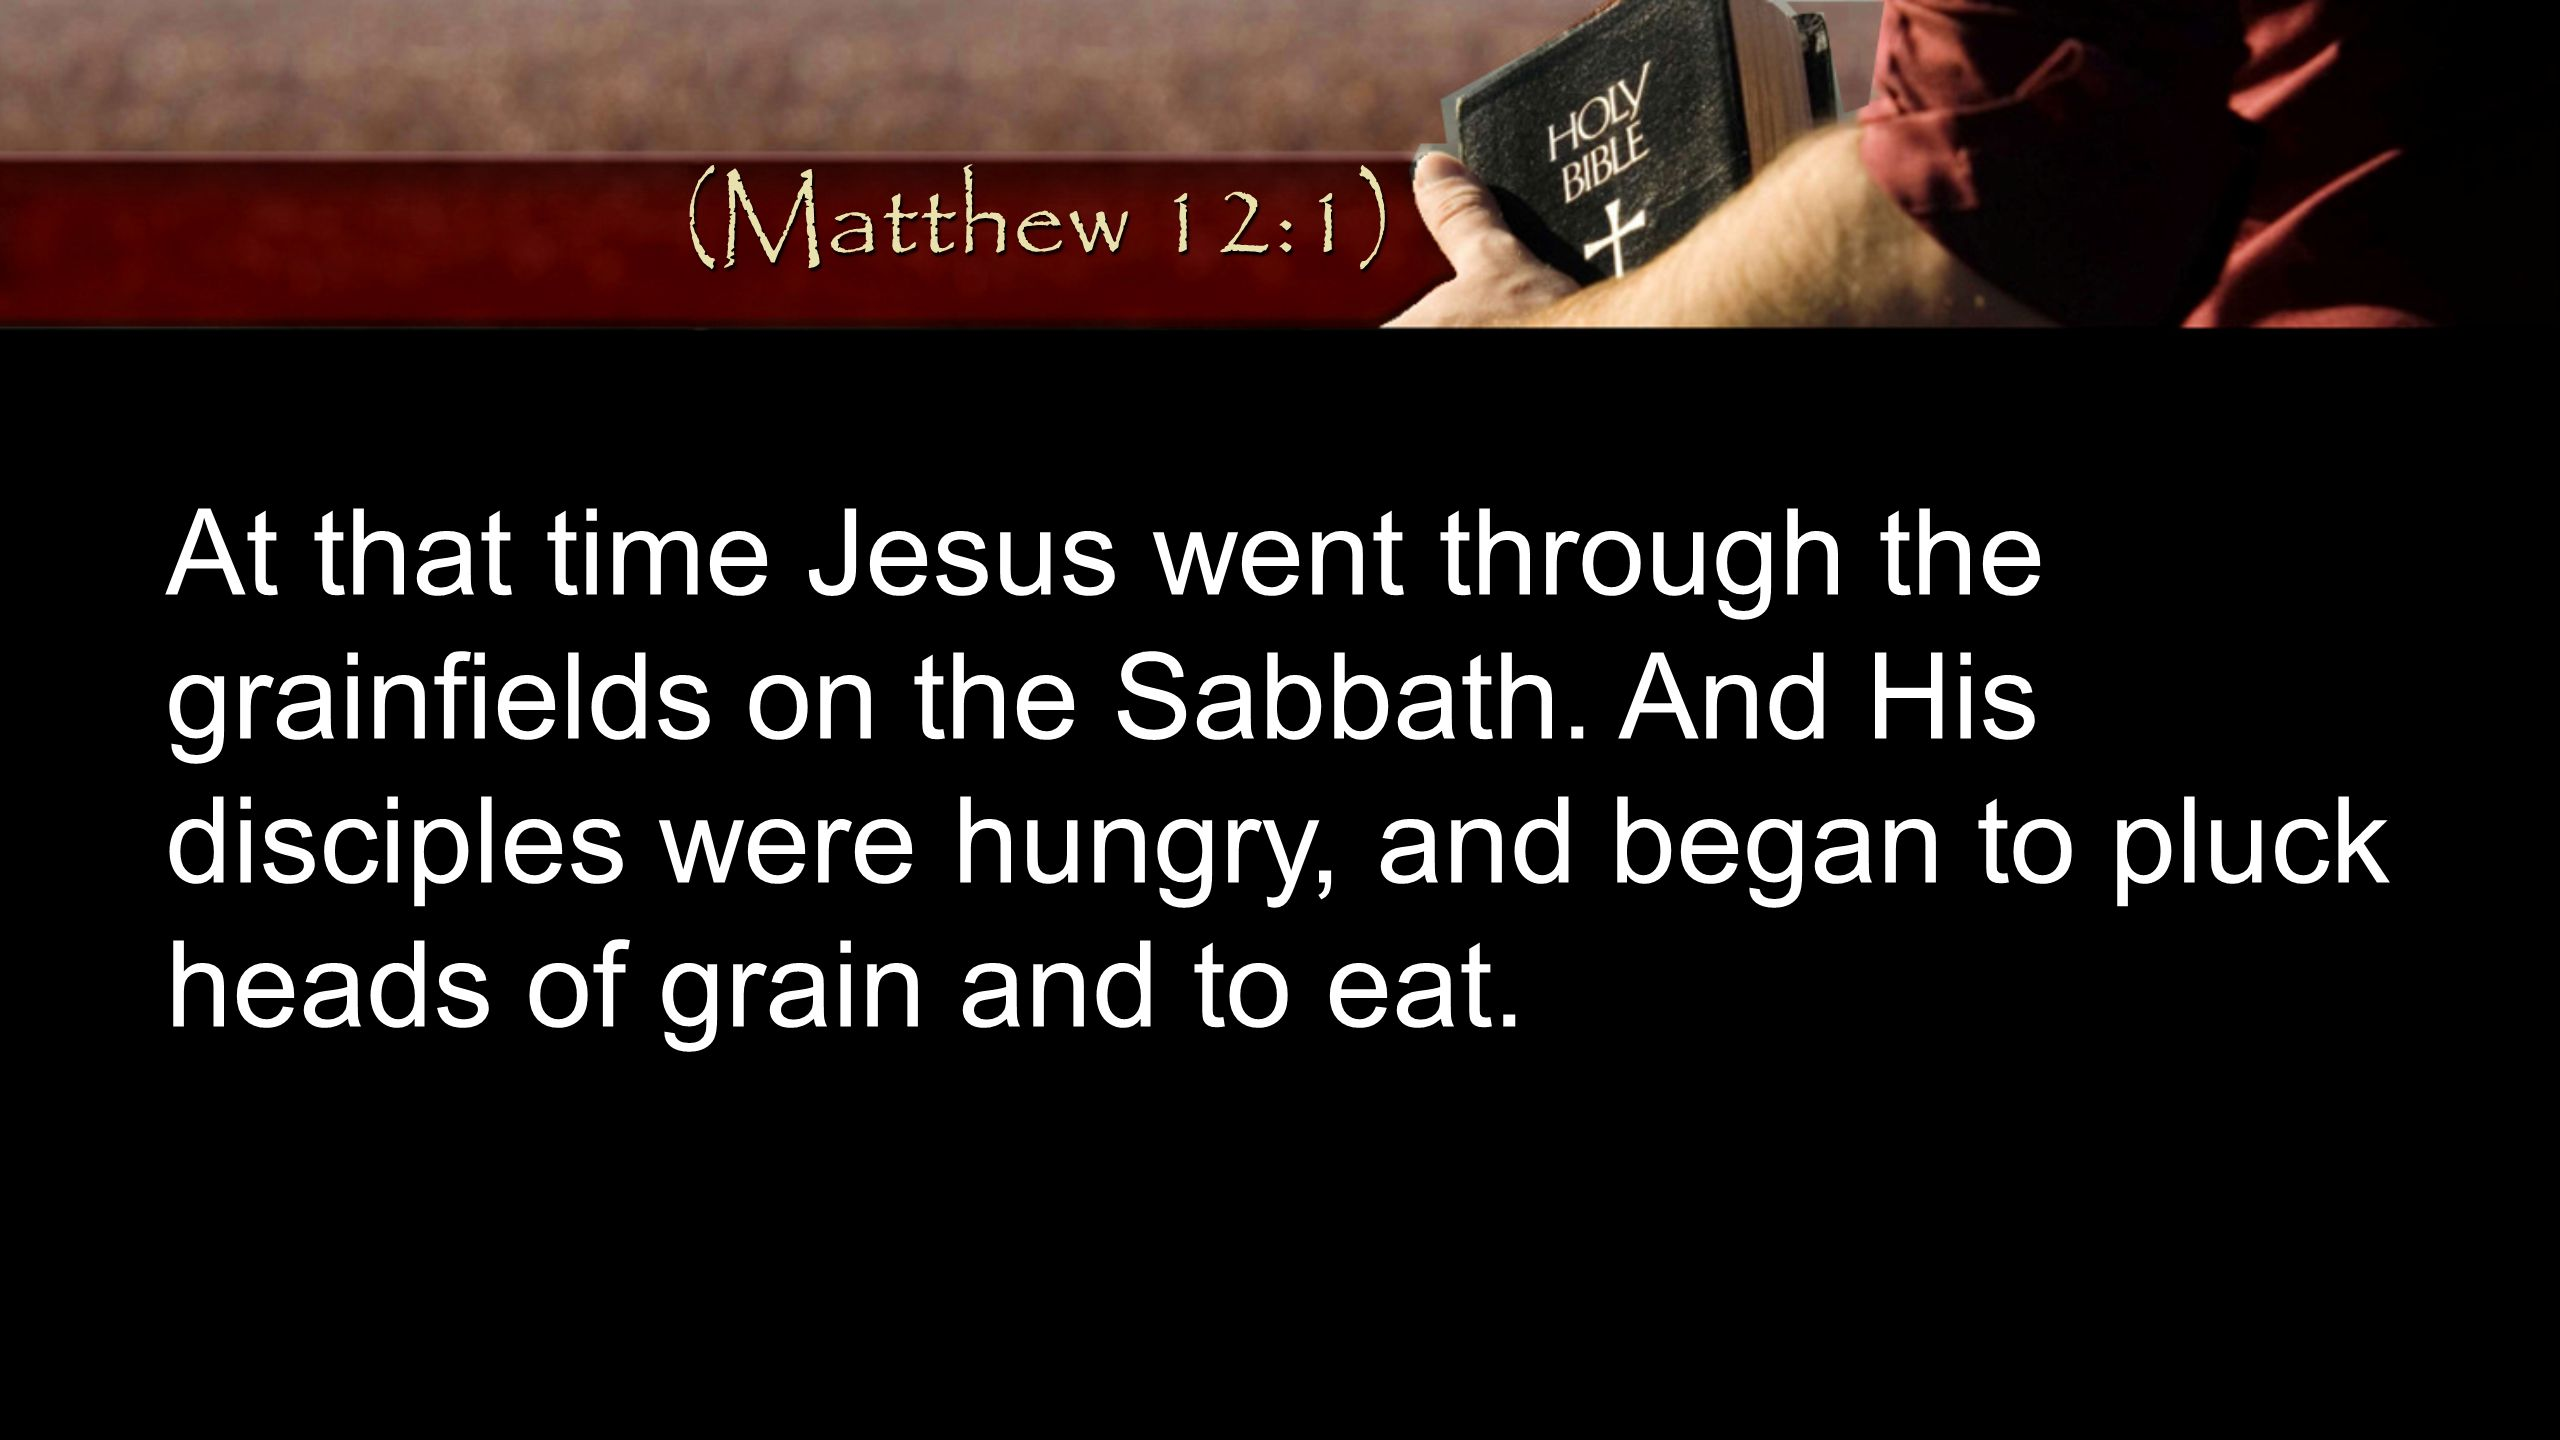 At that time Jesus went through the grainfields on the Sabbath. And His disciples were hungry, and began to pluck heads of grain and to eat. (Matthew